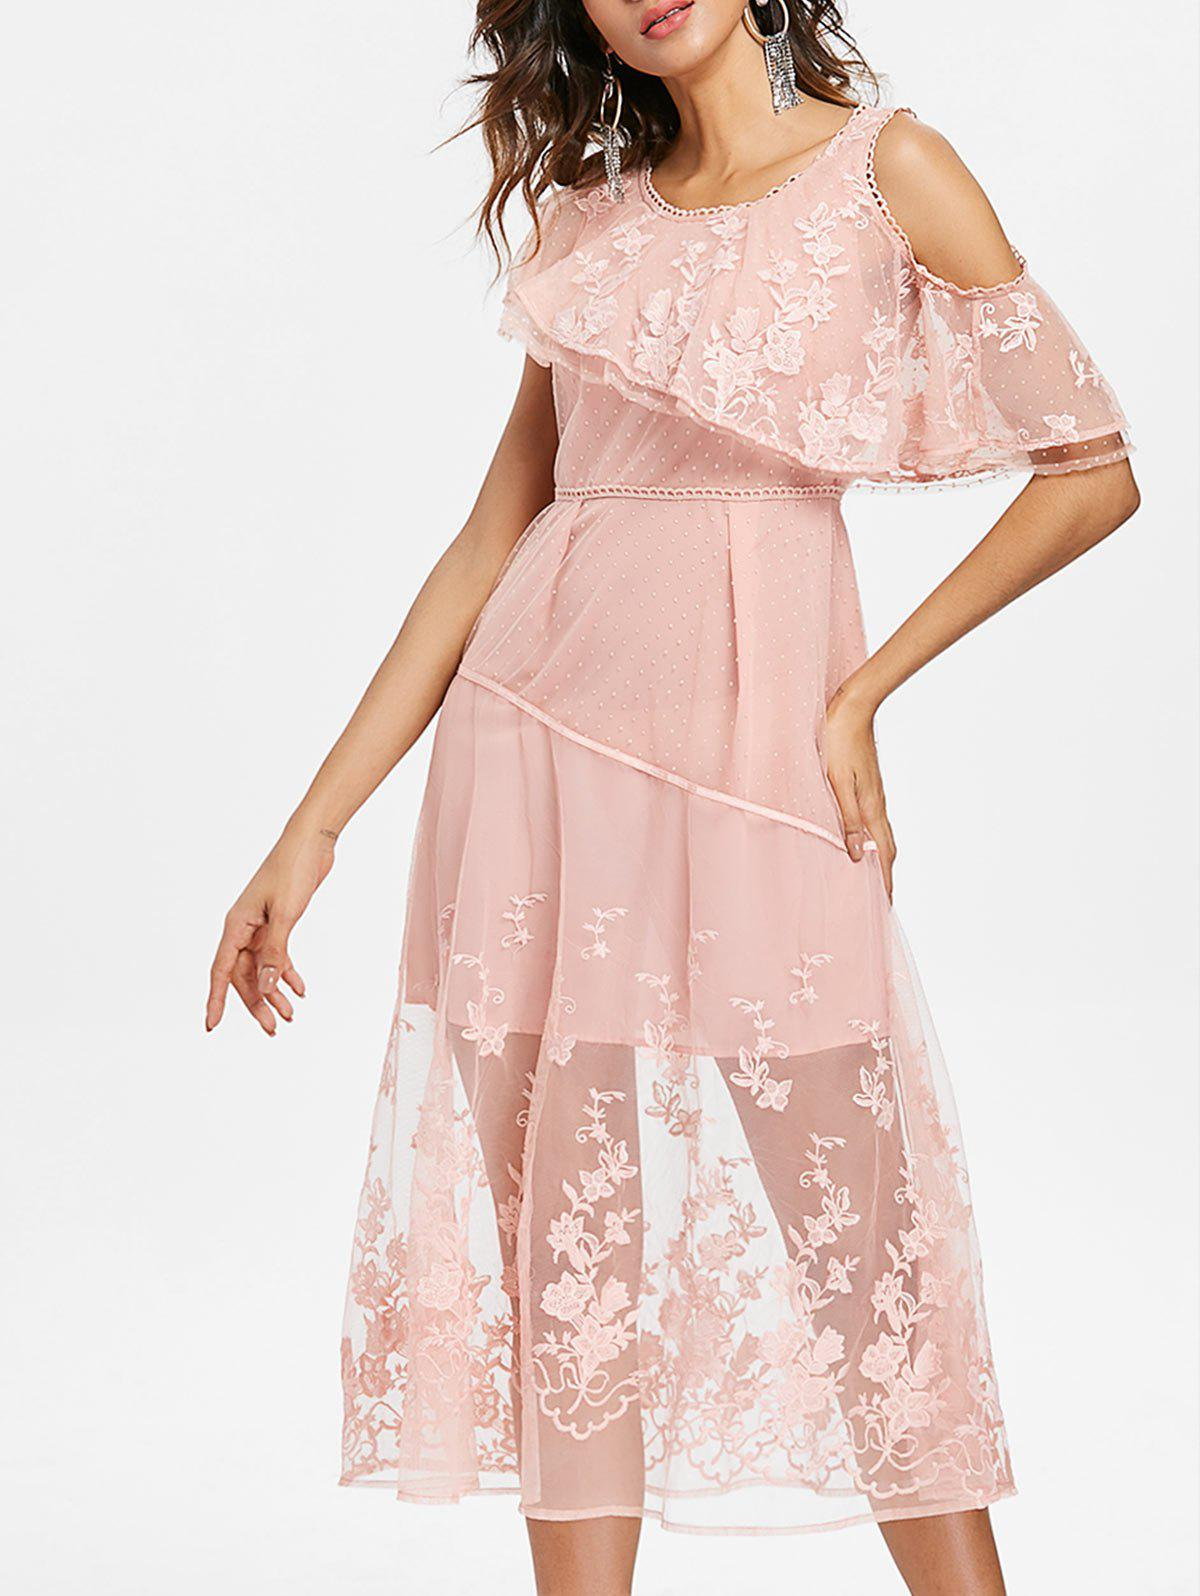 Embroidered Sheer Lace Midi Dress - LIGHT PINK L